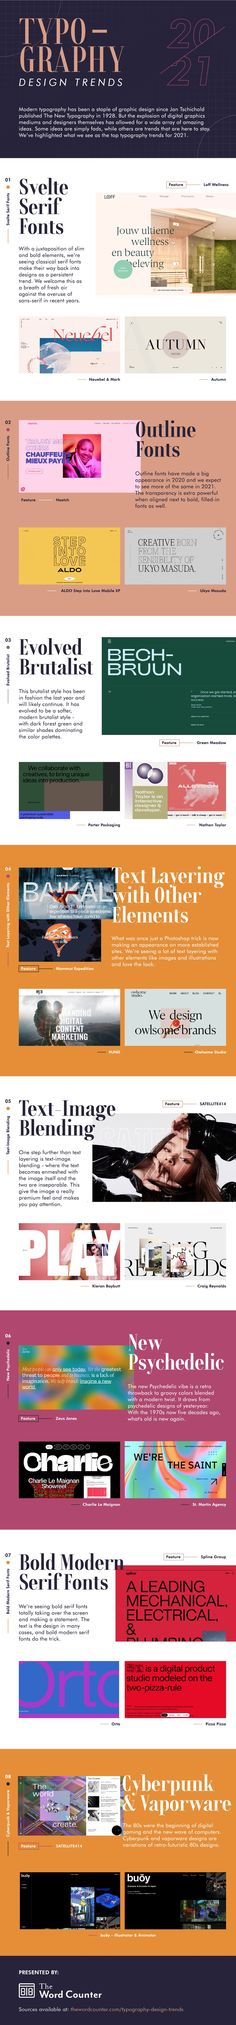 Typography Design Trends 2021 Type Design, Logo Design, Graphic Design, Psychedelic Typography, Modern Serif Fonts, Visual Hierarchy, Small Business Trends, Retro Font, Retro Futuristic